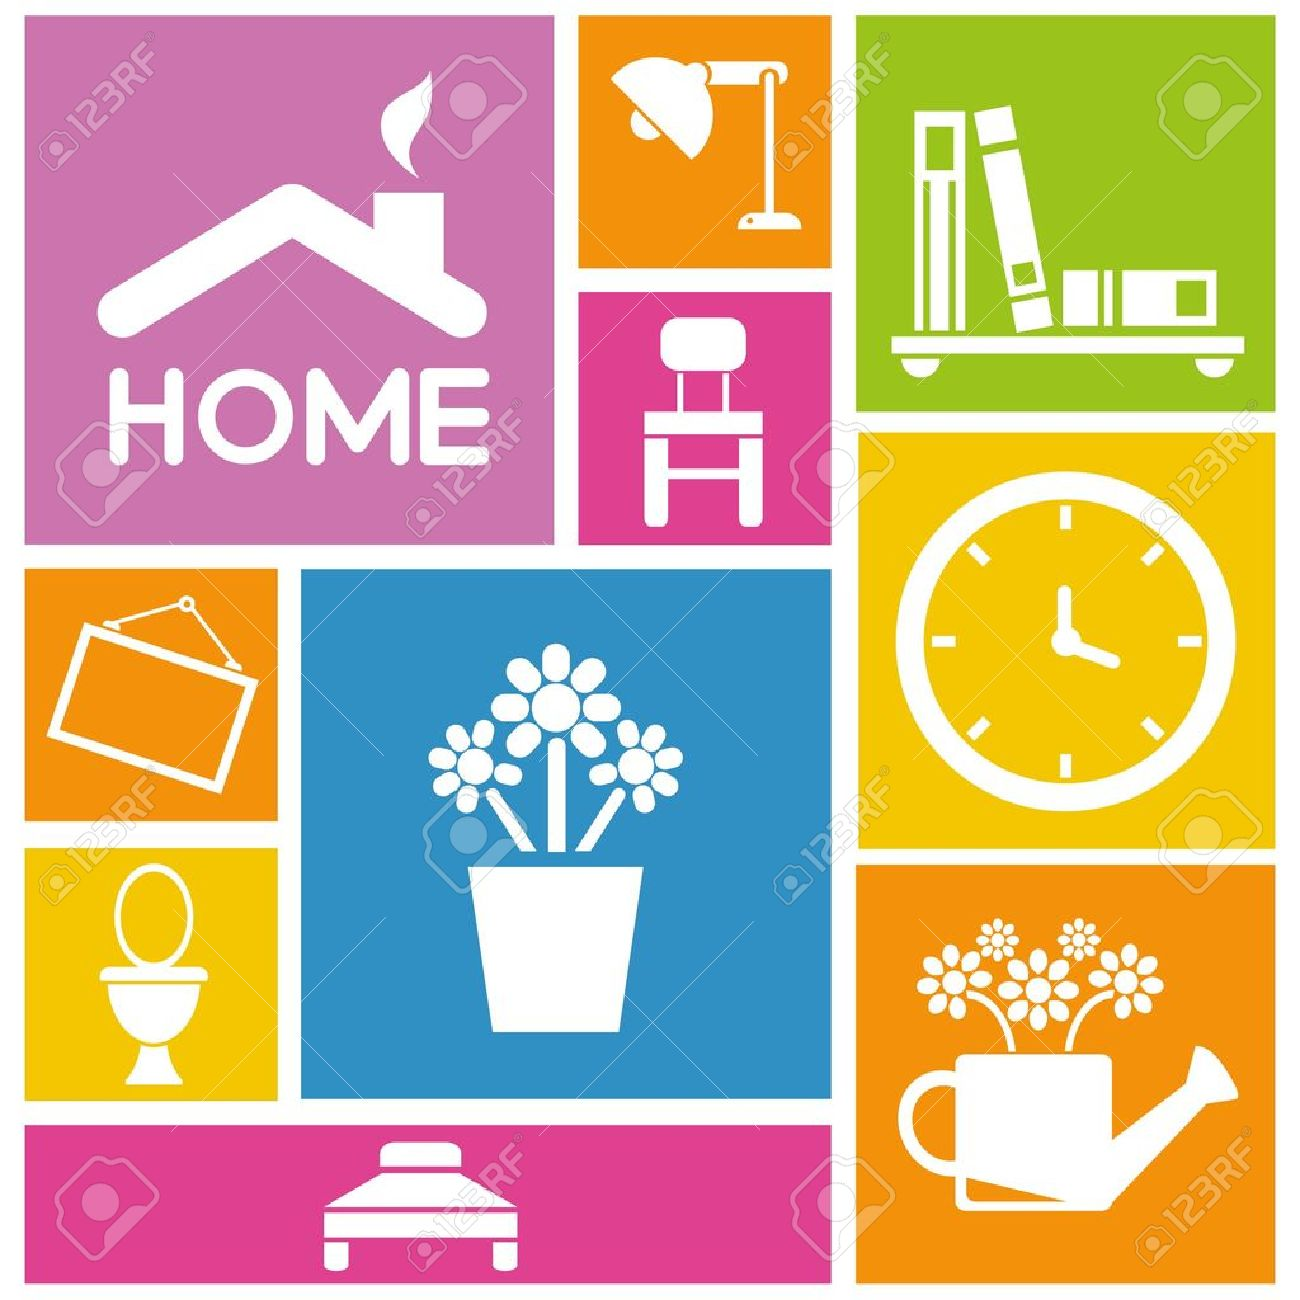 Interior Design And Home Design Icons Colorful Background